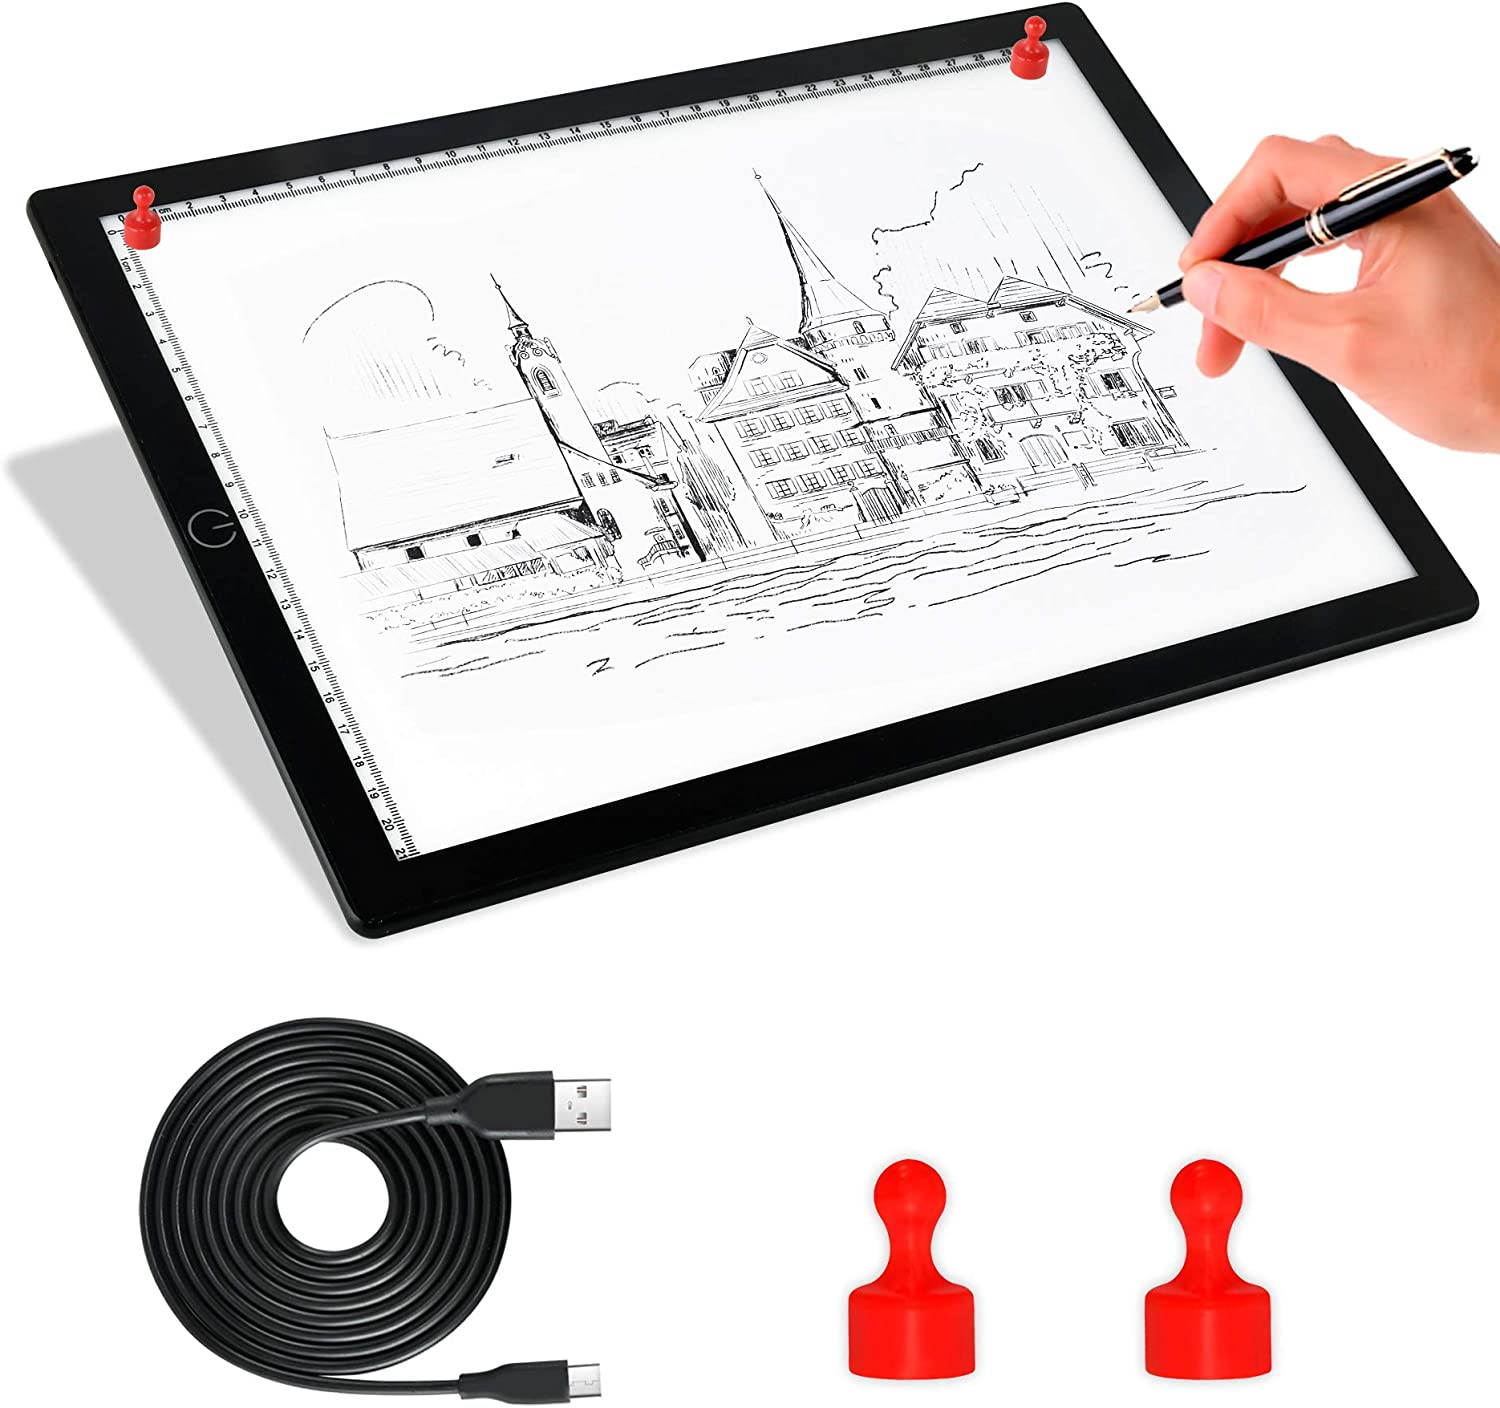 A4 Light Board Portable Tracing Light Box Magnetic Drawing Board Light Drawing Board Light Box For Tracing Sketch Pad Light Drawing Pad Light Table Cricut Light Pad Light Tablet For Tracing, Sketching